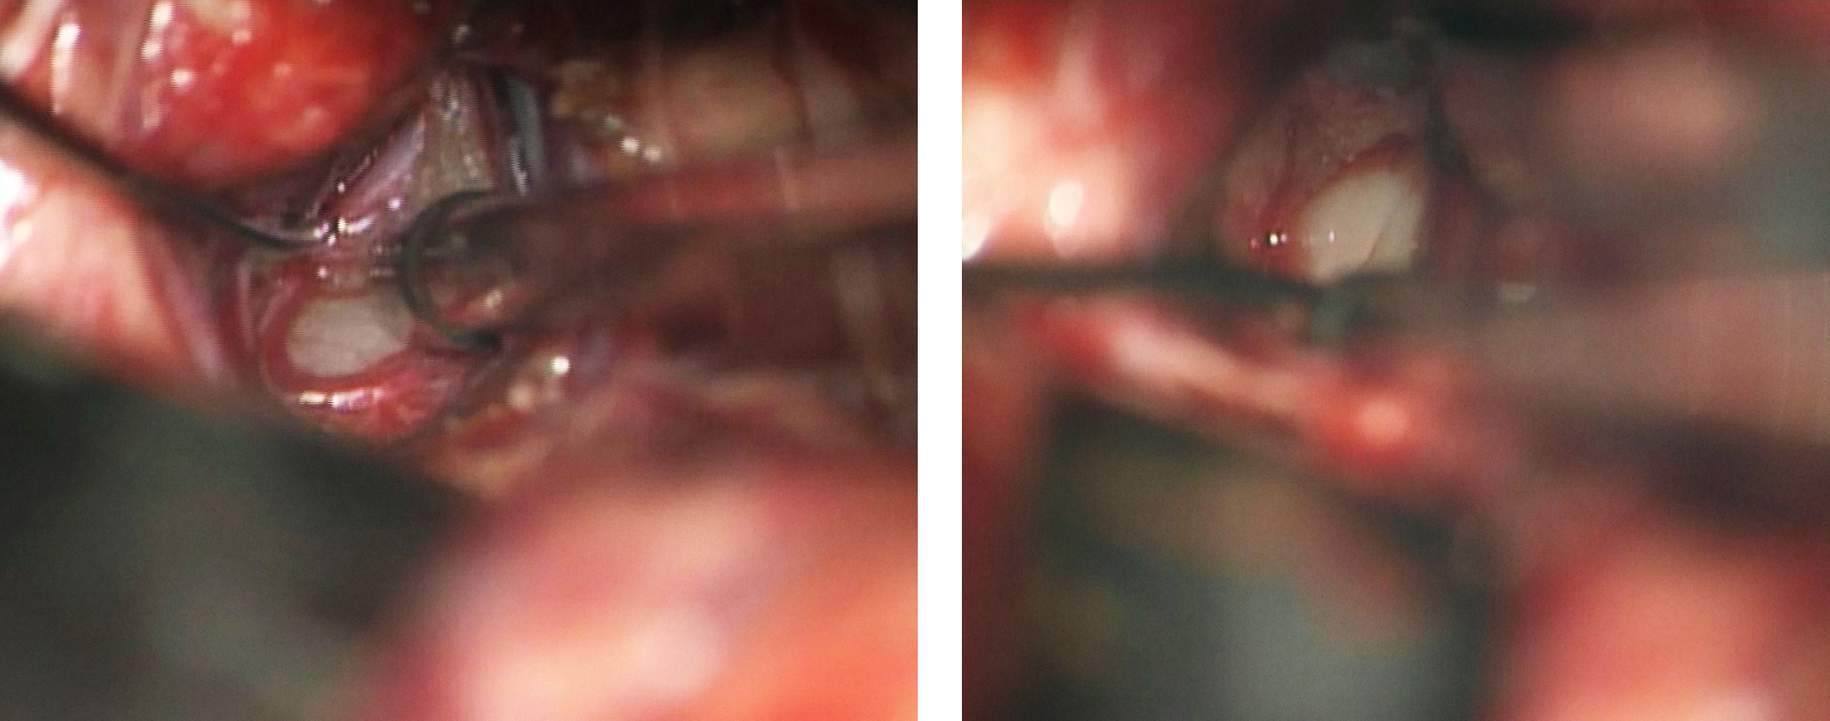 Figure 8: The tumor in Figure 2 is exposed via the midline supracerebellar approach with the patient in the sitting position. Note the discoloration of the left tectum (left image, at the tip of suction device). Removal of the affected tectum allowed entry into the ventricle and gross total resection of the mass (right photo).